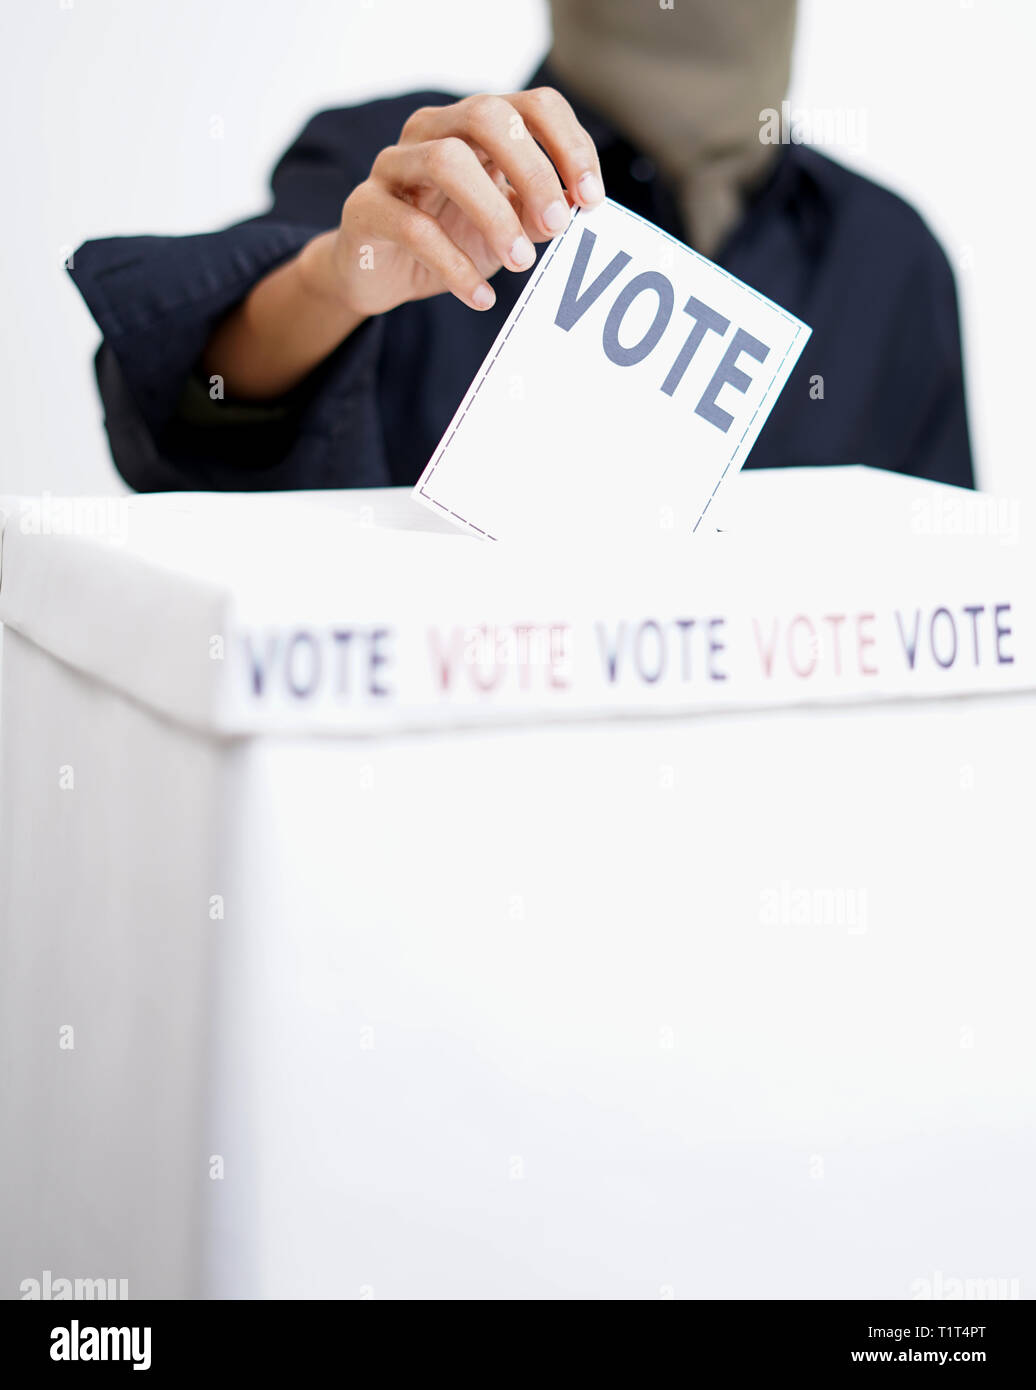 The hand putting a ballot in the ballot box. - Stock Image